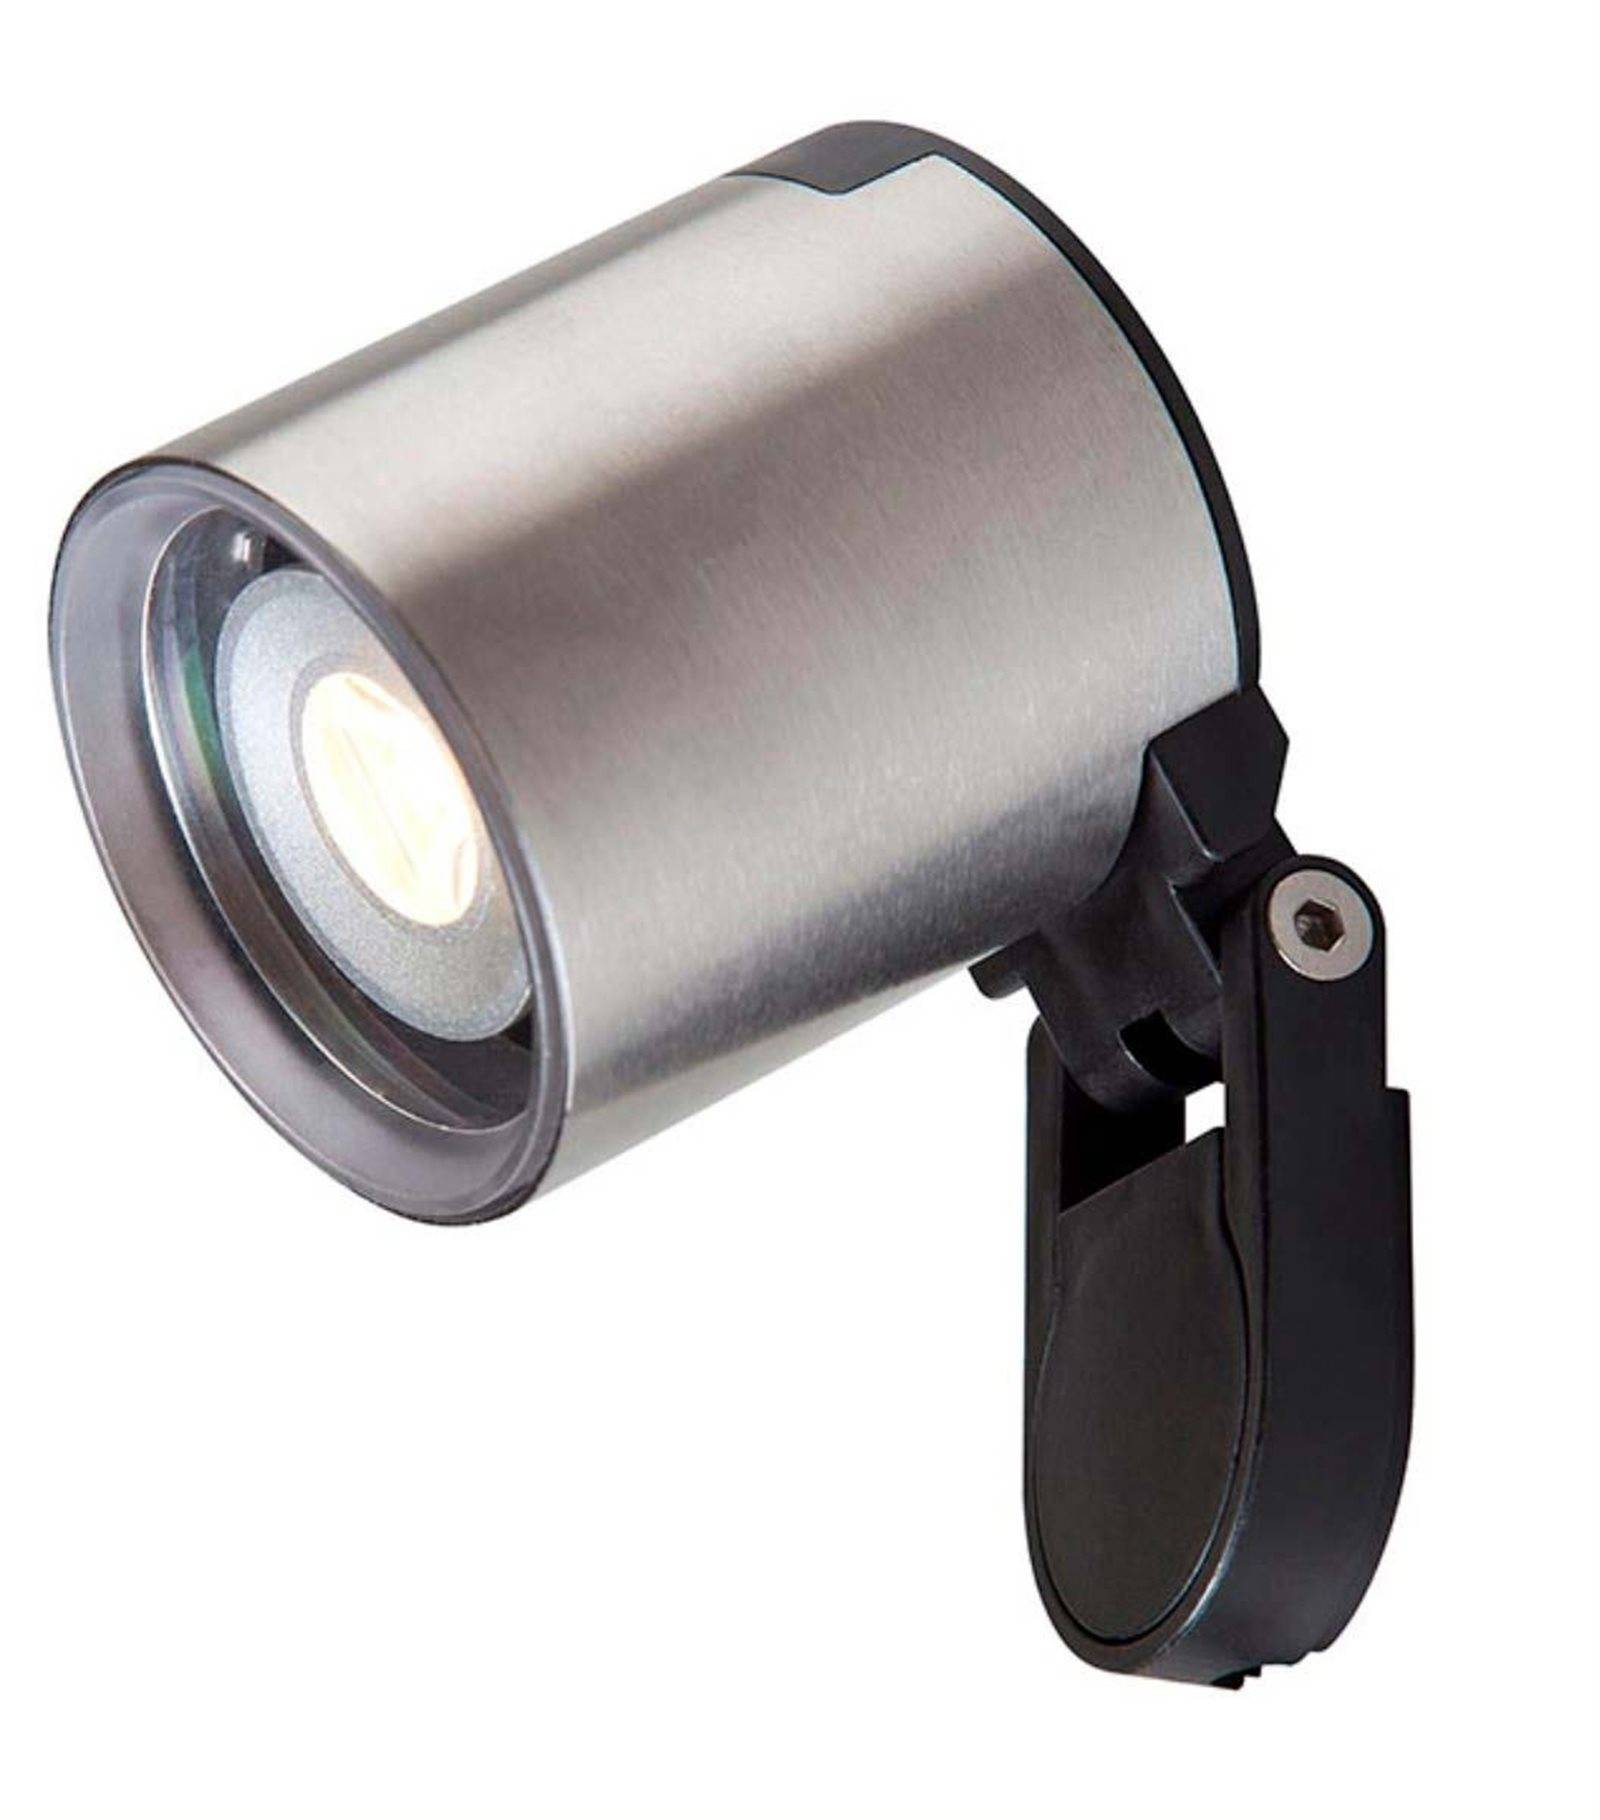 Camera Ip Exterieur Orientable Spot Projecteur à Piquer Ou Visser Galileo 2w Gu5 3 Mr11